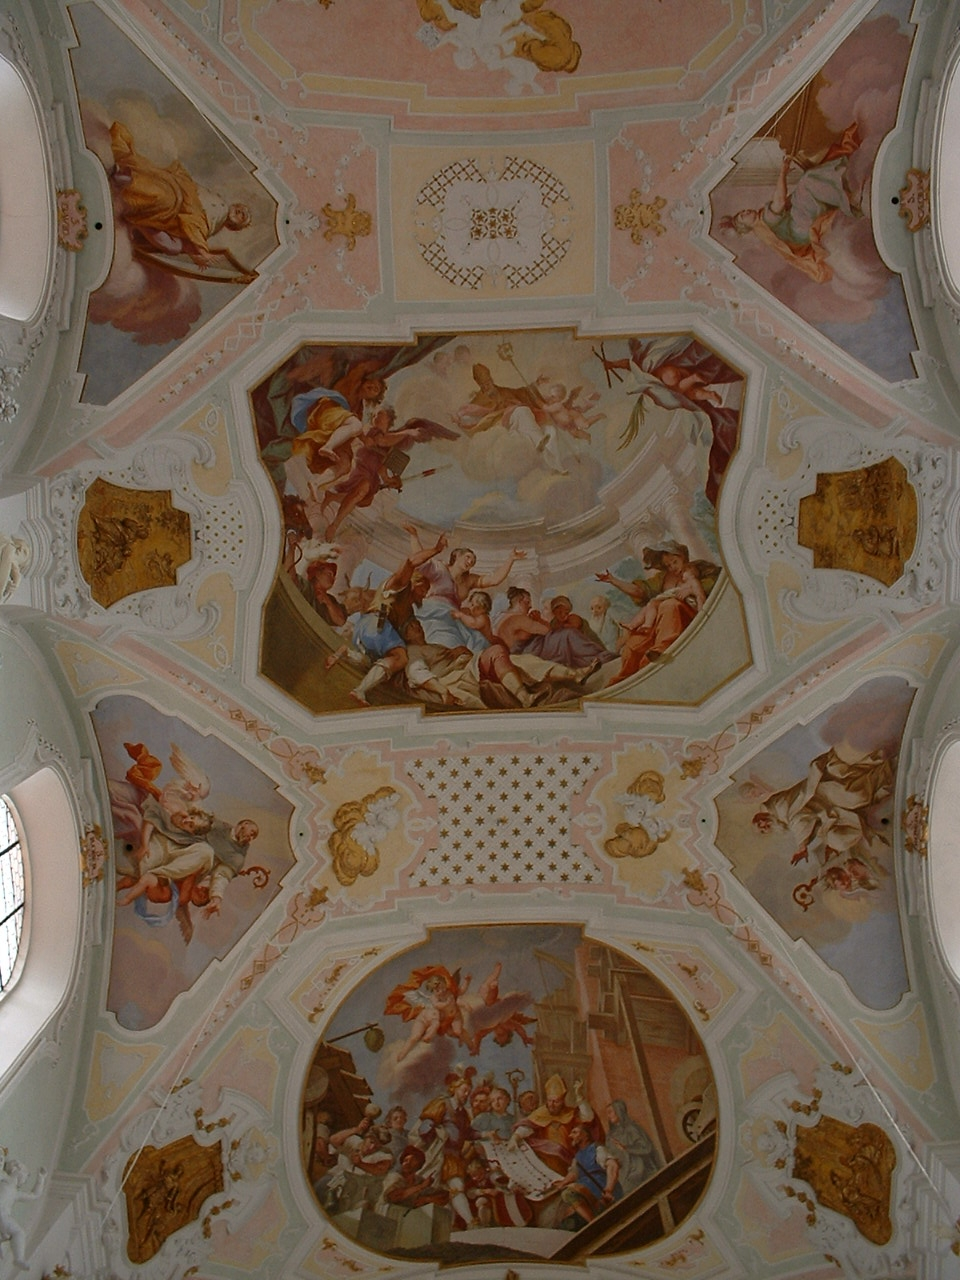 https://upload.wikimedia.org/wikipedia/commons/1/16/Ochsenhausen_Abbey_church_interior_02.JPG